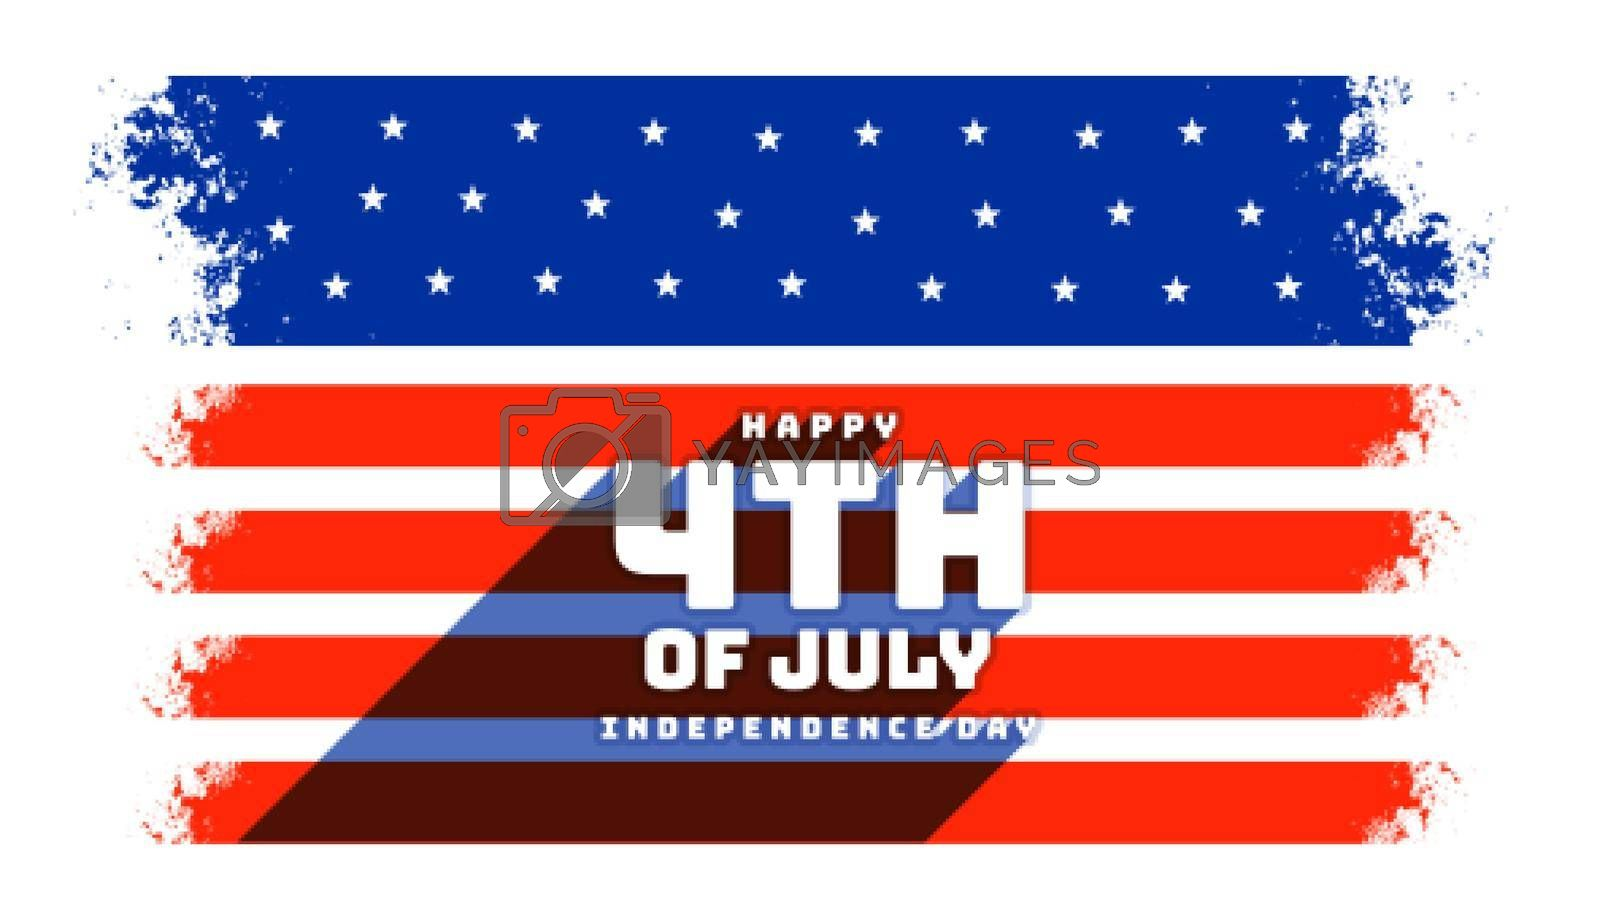 4th of july independence day celebration background